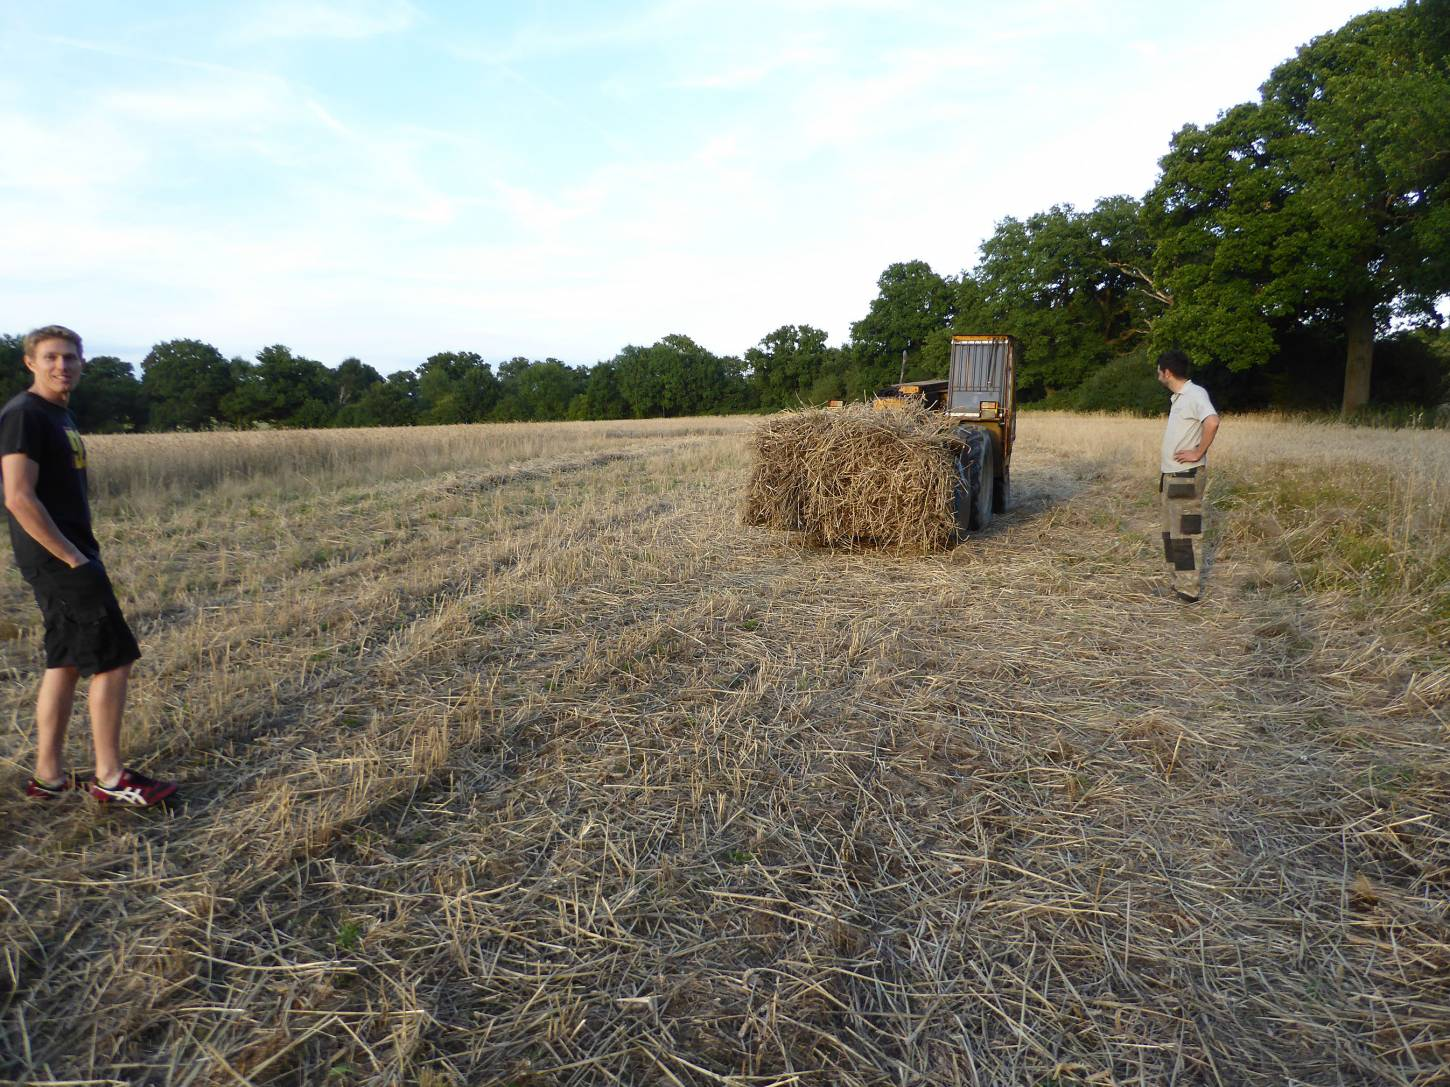 getting the <a href='http://www.wheat-gateway.org.uk/hub.php?ID=39' target='_blank'>Chidham Red</a> to the barn, our manual harvest at Lodge Farm - 7:31pm&nbsp;13<sup>th</sup>&nbsp;Aug.&nbsp;'17